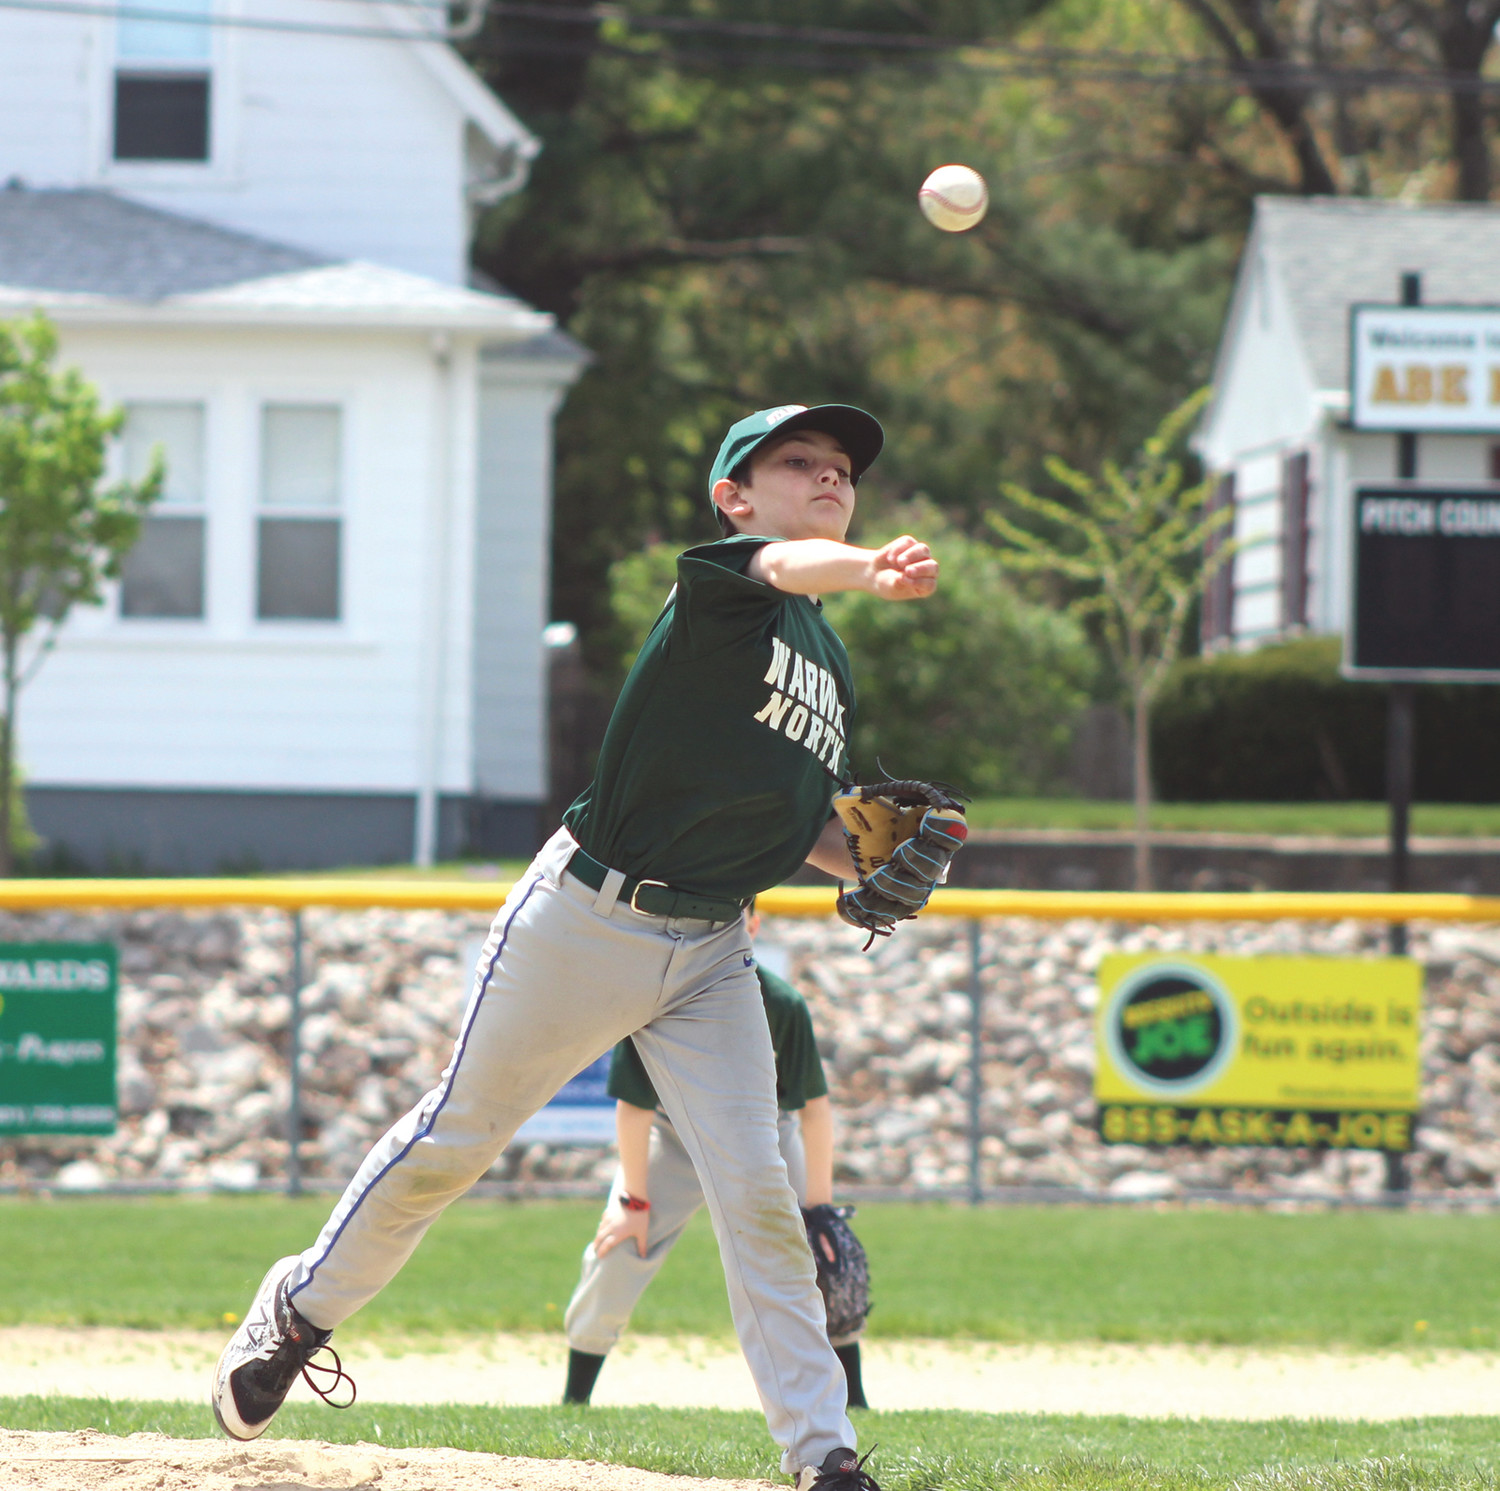 Jacob Oliveira of Crusty's Pizza delivers a pitch in the first inning on Saturday afternoon.